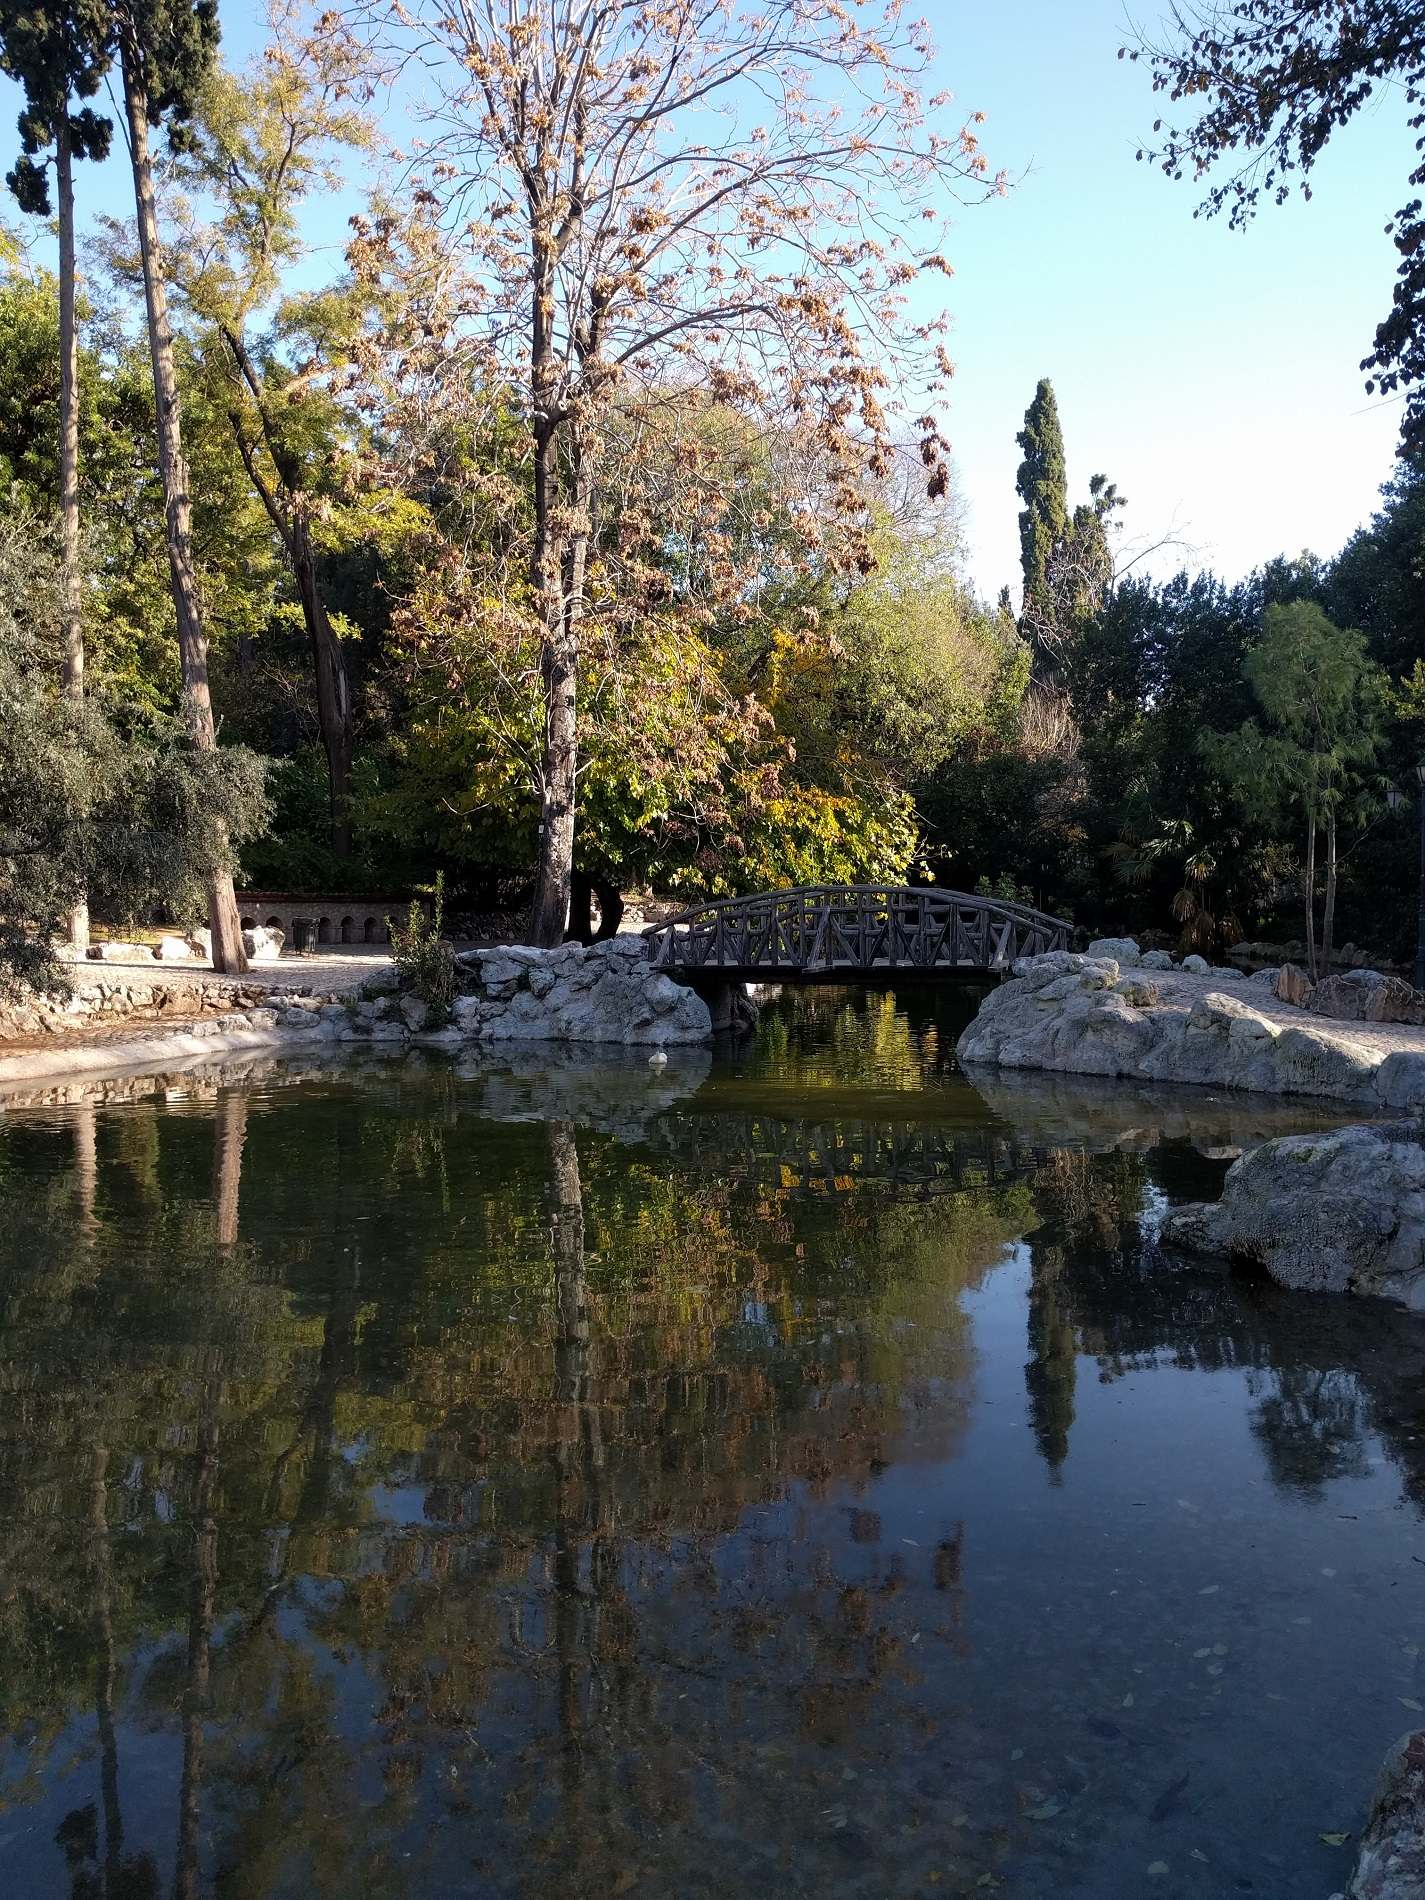 The water element and its mesmerizing reflections inside the park. Source: Truevoyagers